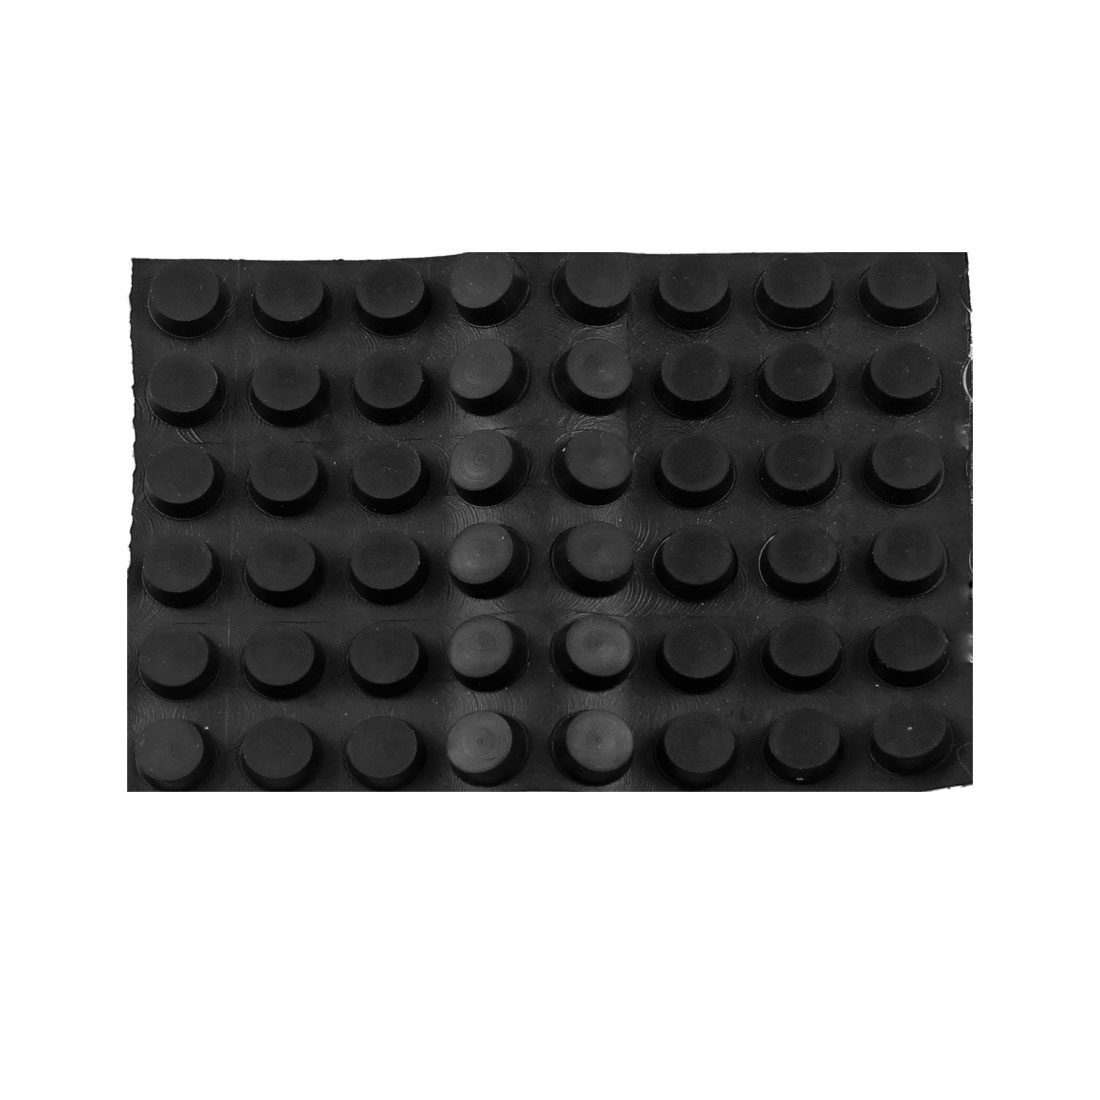 Home Table Floor Adhesive 12mm x 5mm Mini Rubber Pads Black